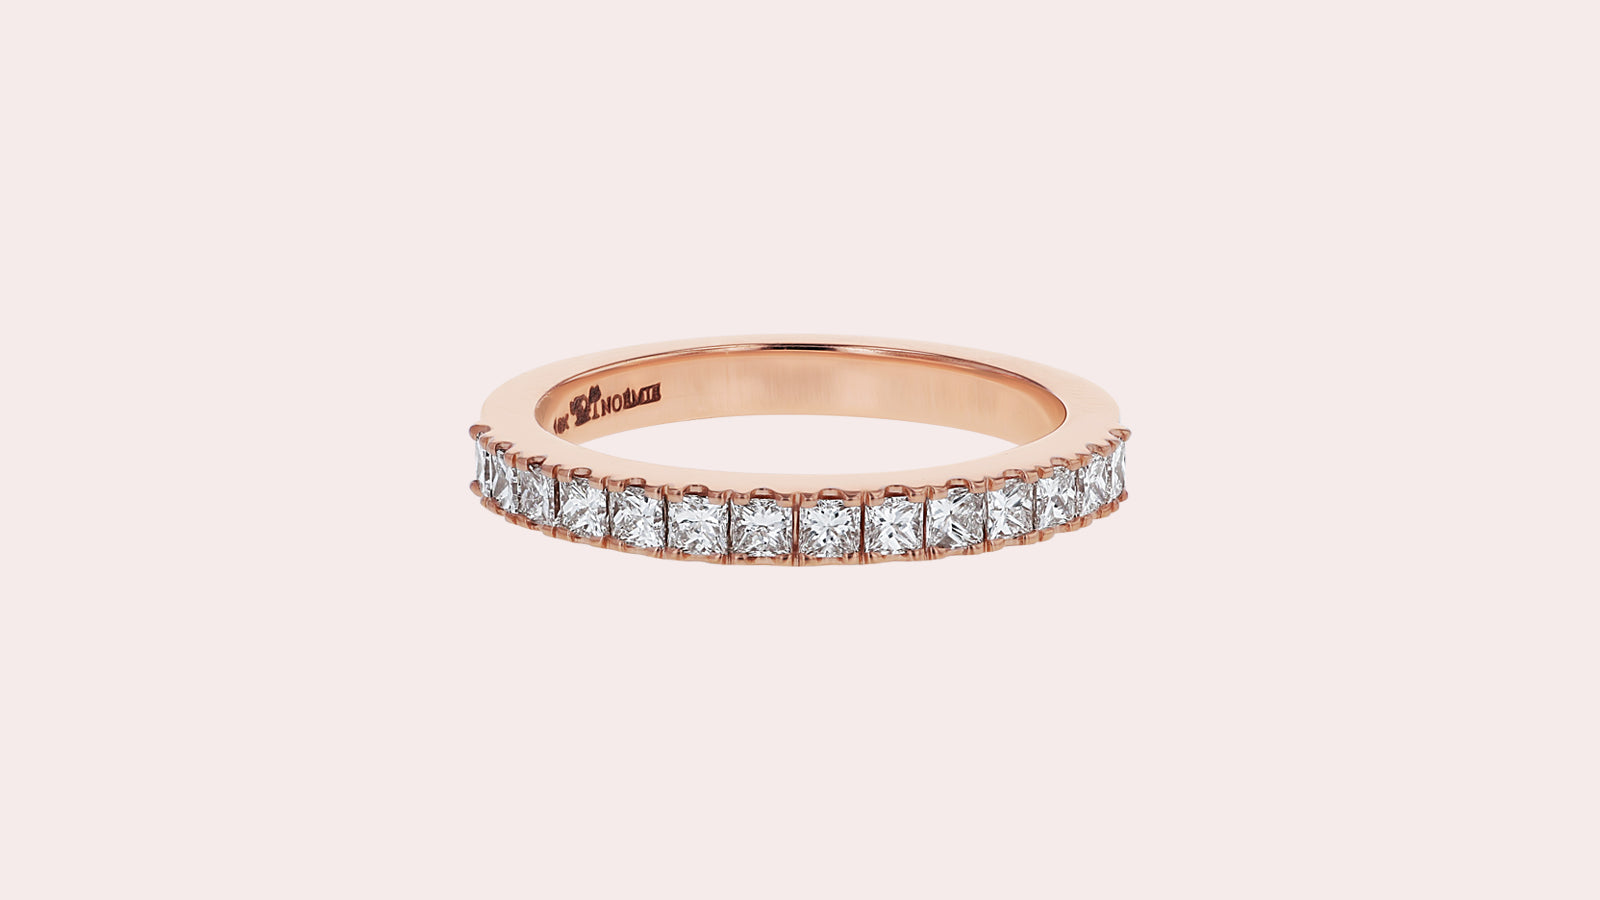 //cdn.shopify.com/s/files/1/1043/0216/files/Princess-Cut-Diamond-Eternity-Band_1600x_bdf04d09-cd8c-4b0d-980f-abaf6287c14f_1600x.jpg?v=14330134930663100565